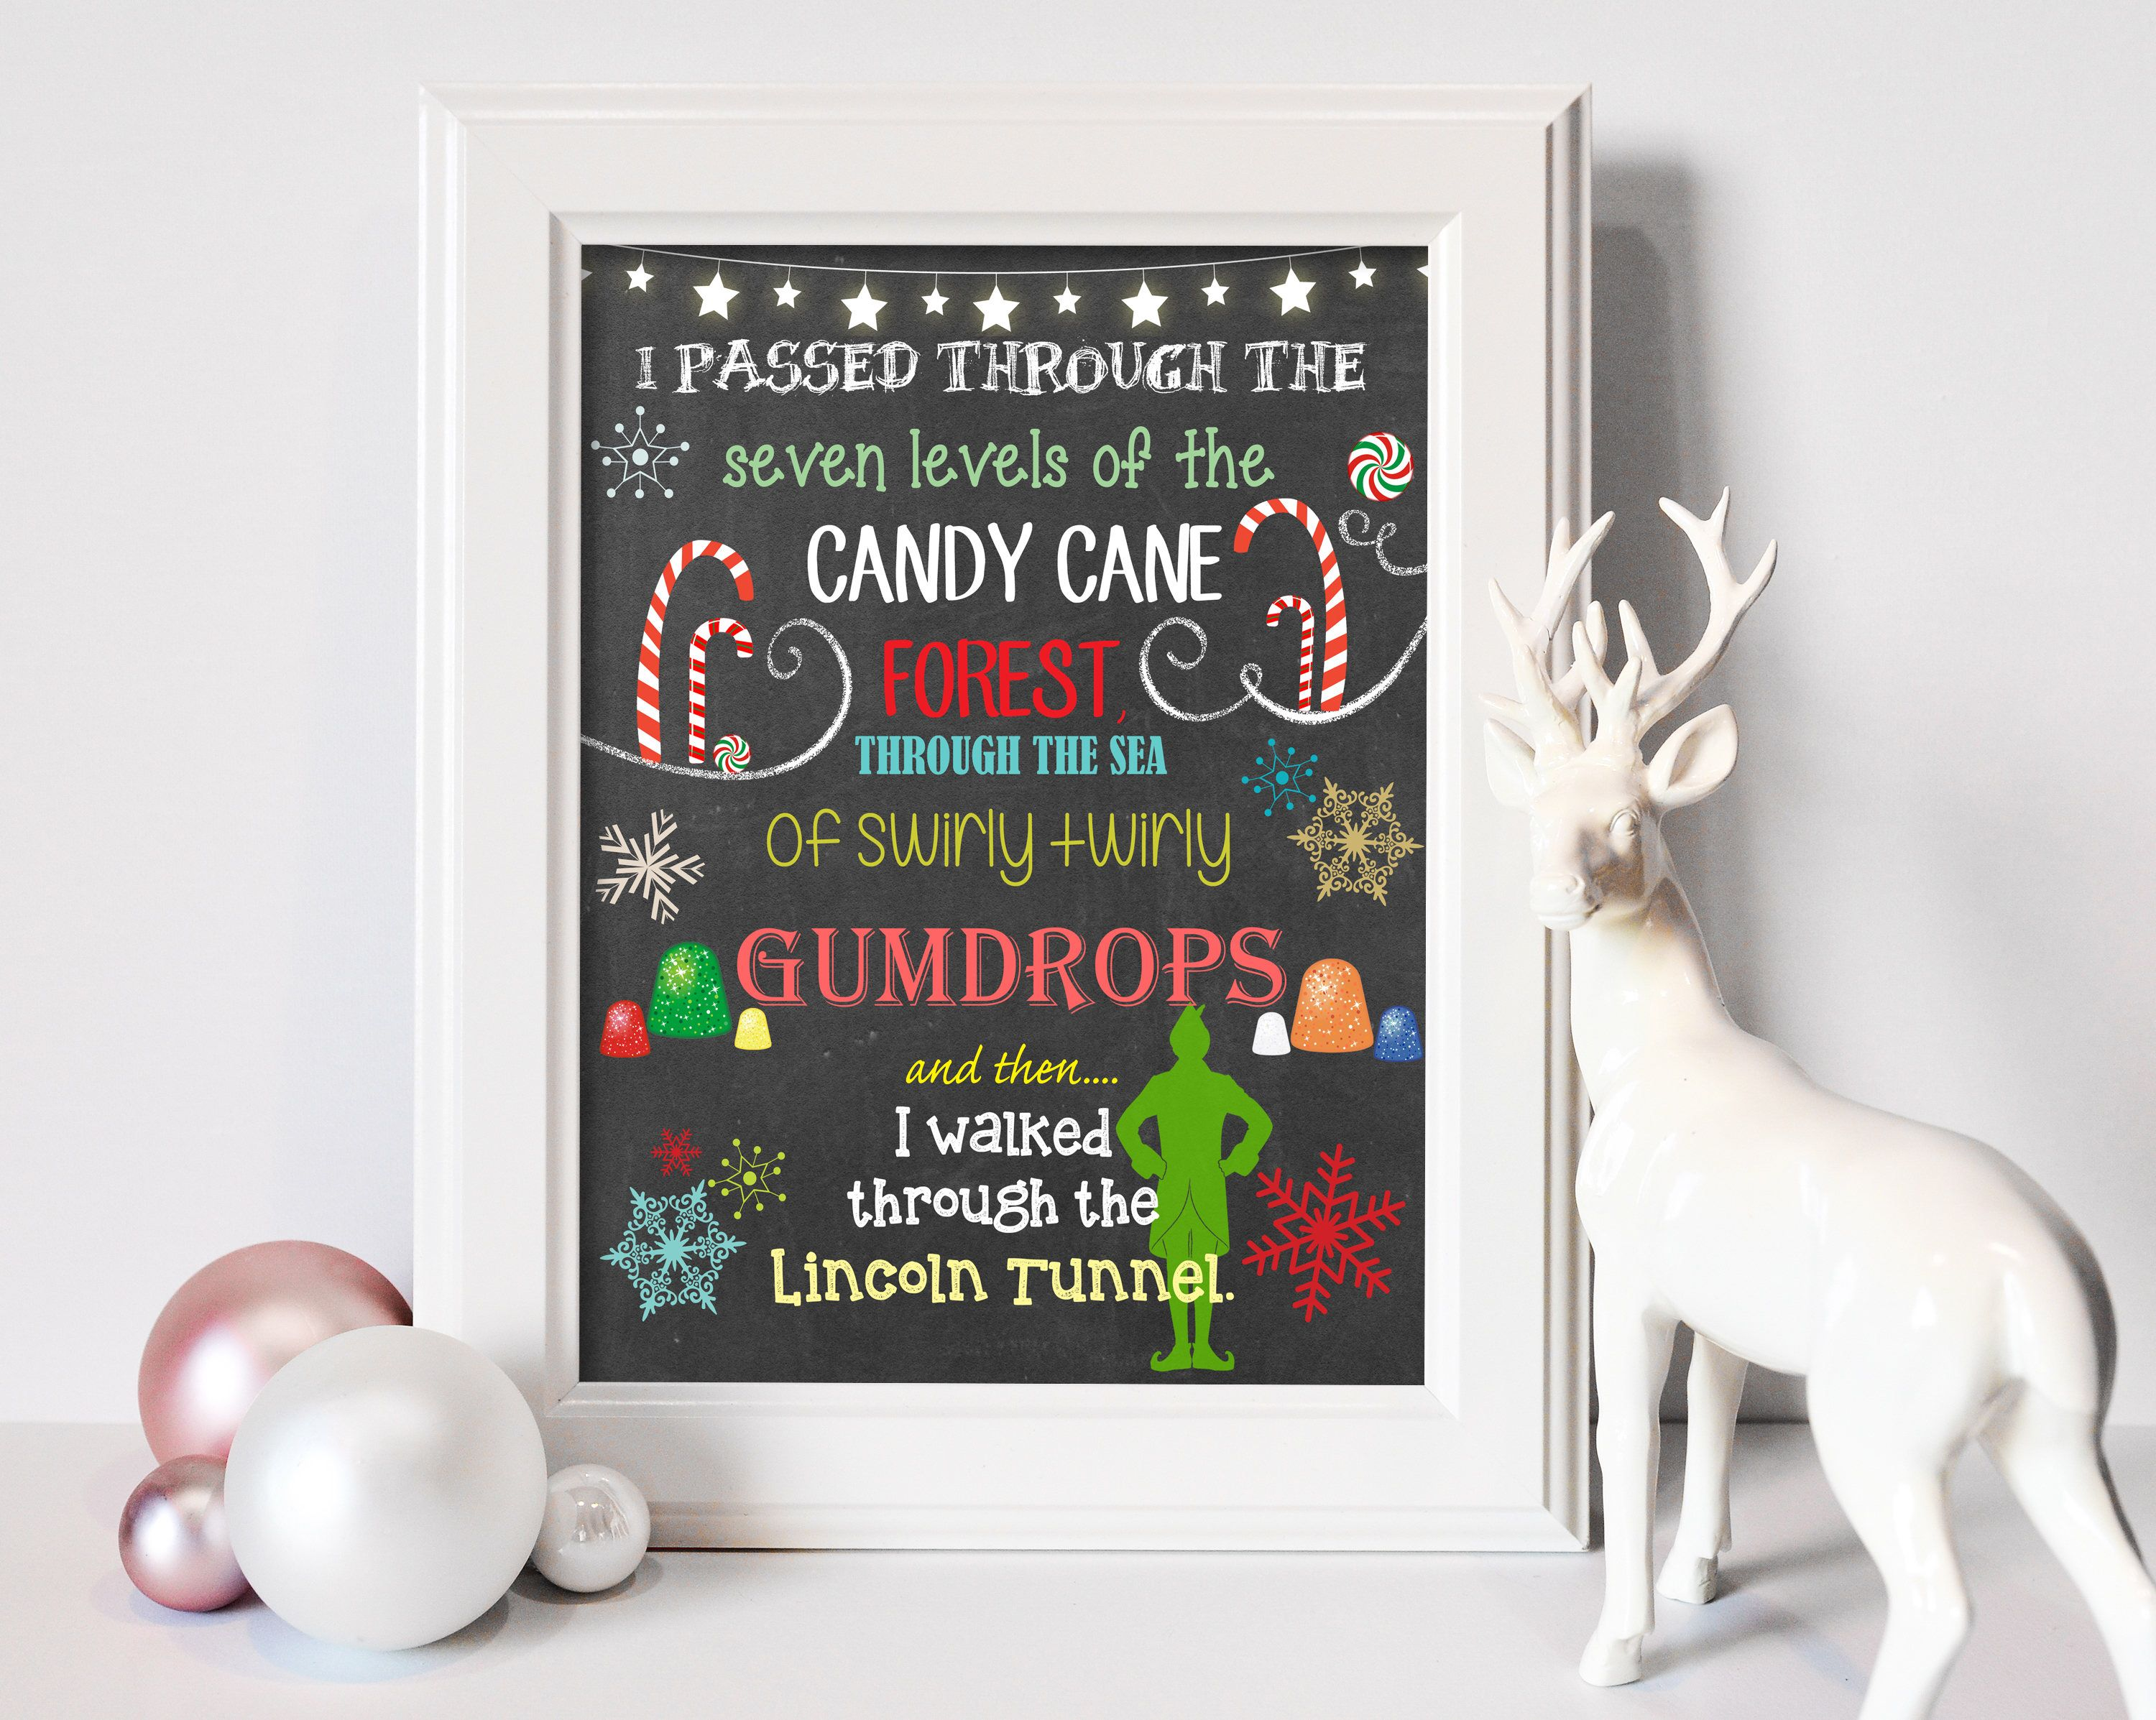 8x10 Buddy the Elf Christmas Printable | Christmas Decor - INSTANT DOWNLOAD by olliewolliecreations on Etsy https://www.etsy.com/listing/214619406/8x10-buddy-the-elf-christmas-printable